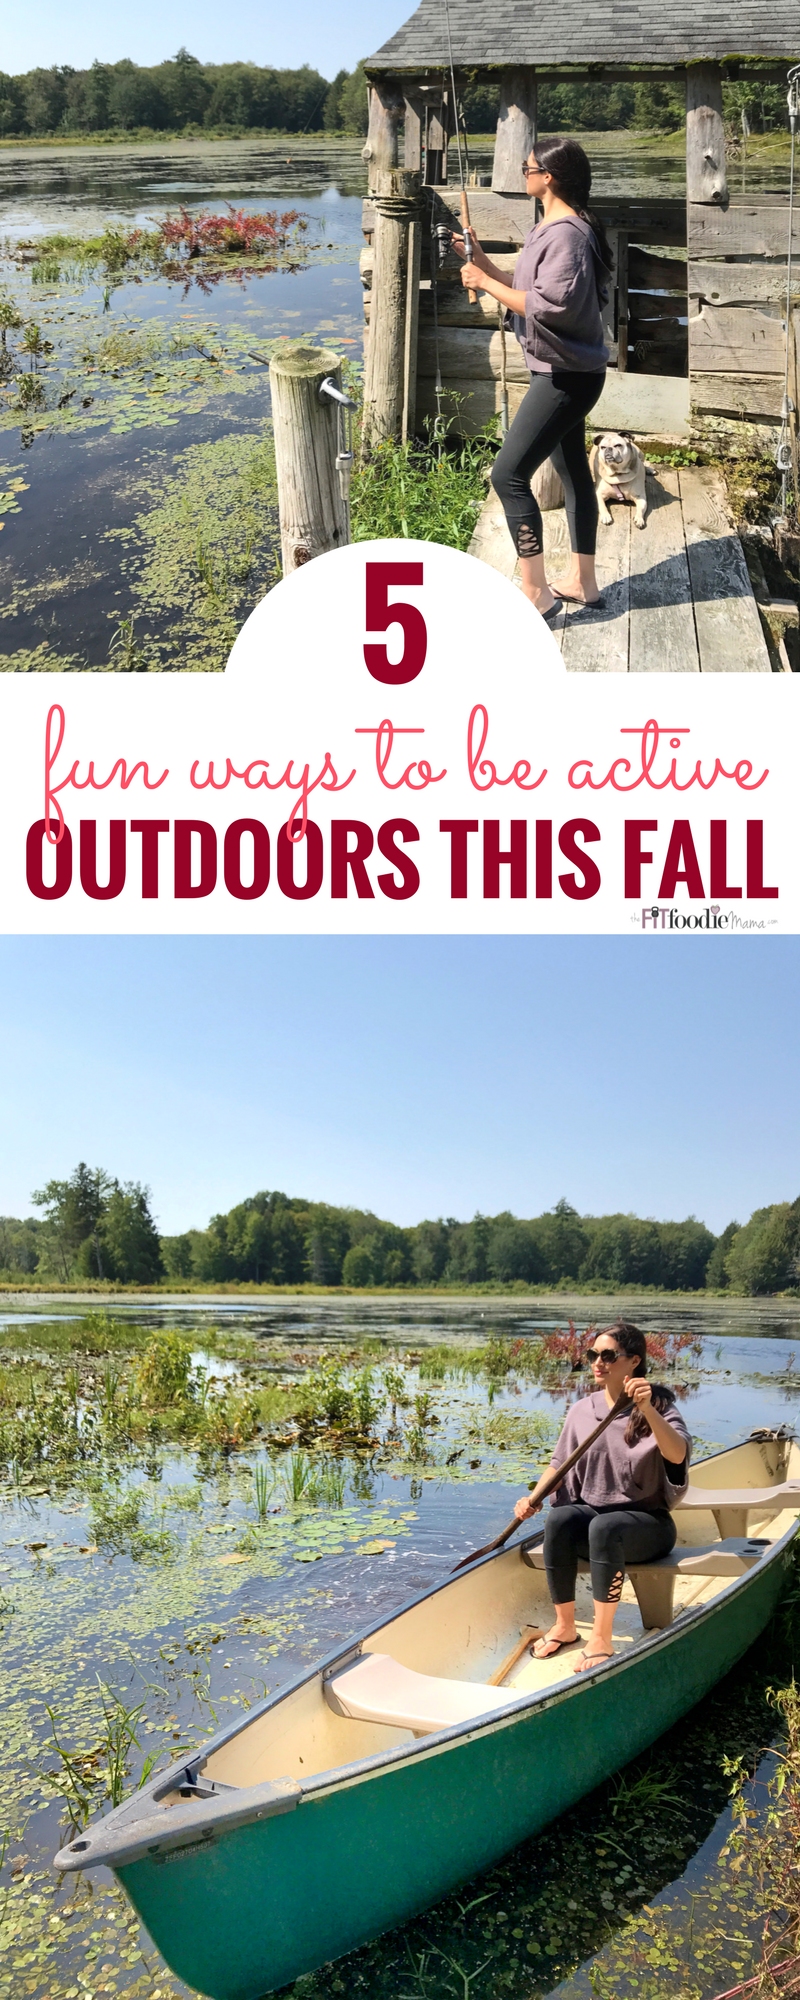 5 Ways to Stay Active This Fall! Enjoy the cool, crisp autumn air and changing leaves while working up a sweat and looking stylish in @prAna!